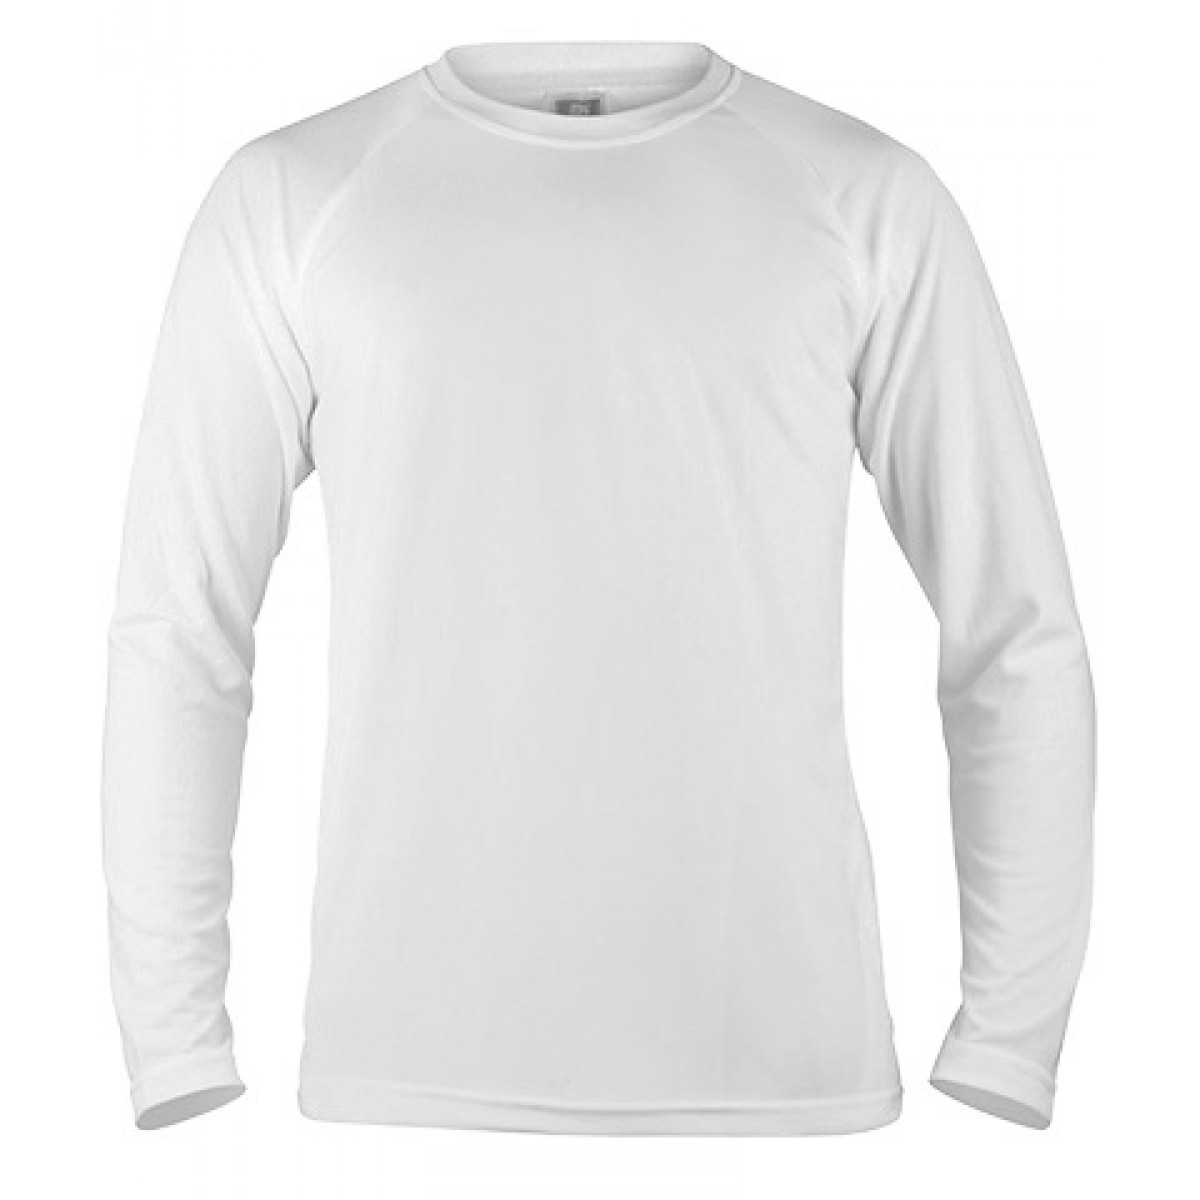 Long Sleeve Mesh Performance T-shirt-White-L